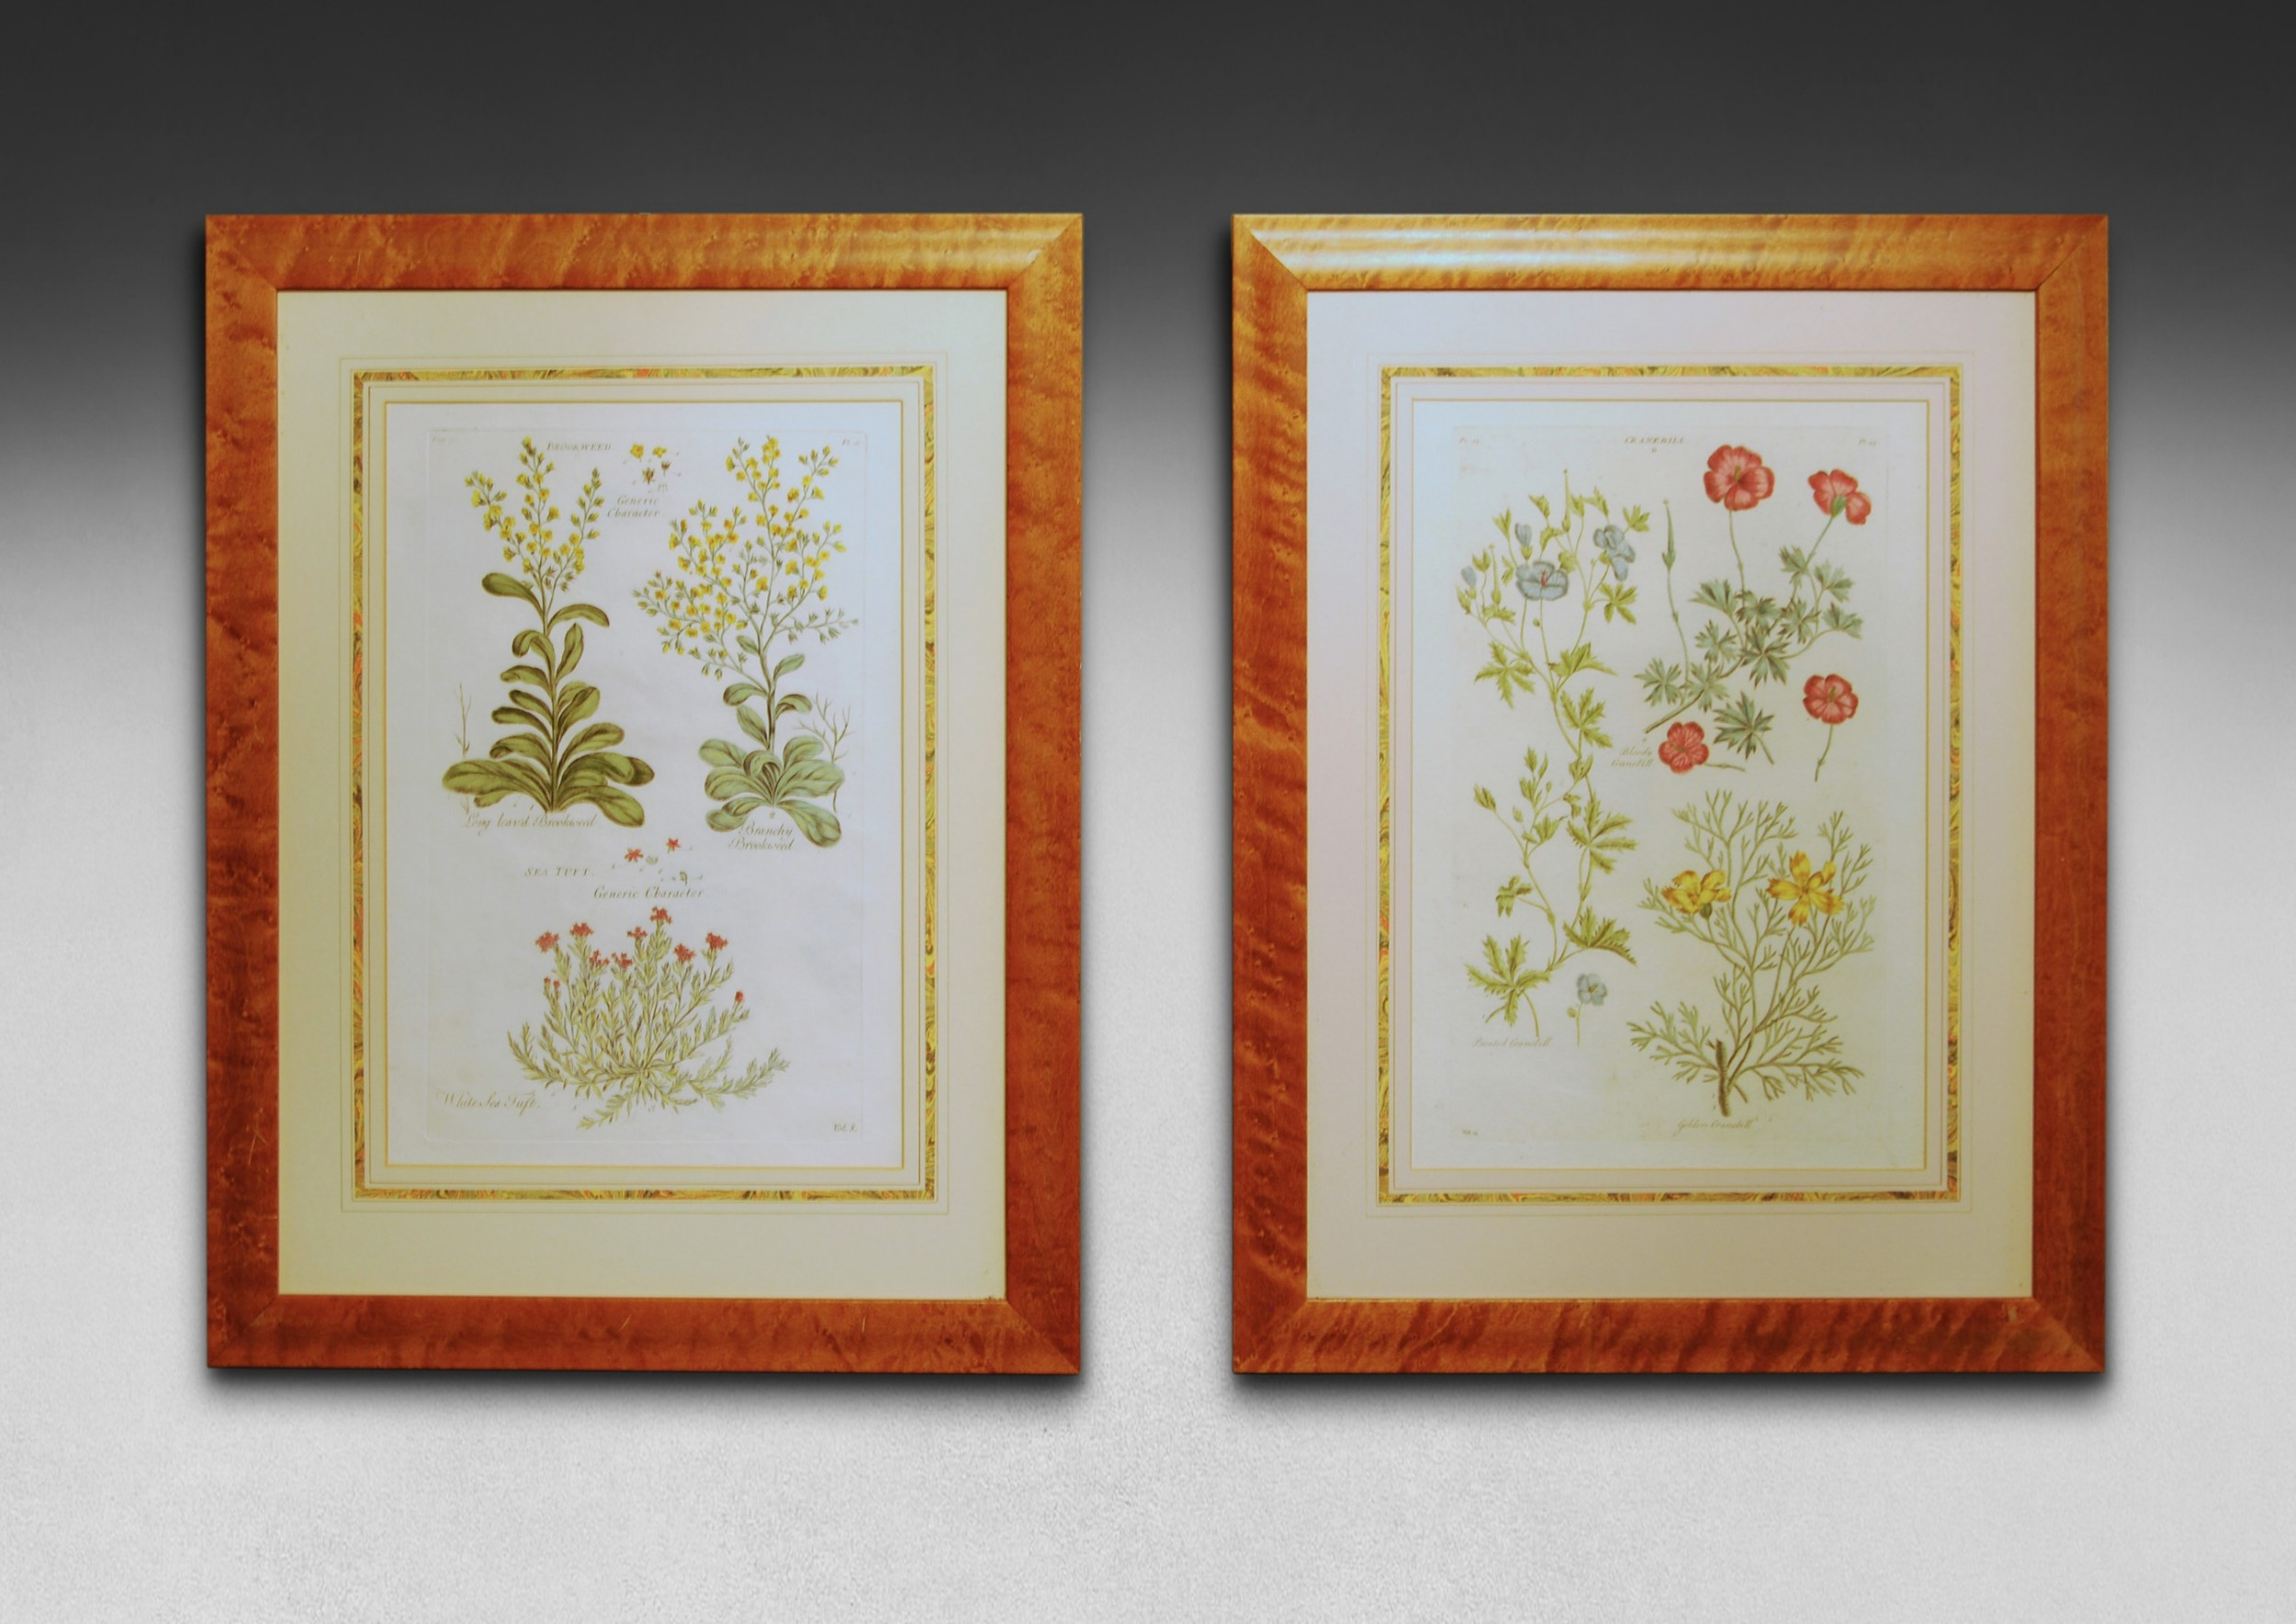 a pair of hand coloured copper plate engravings by john hill from eden or a compleat body of gardening